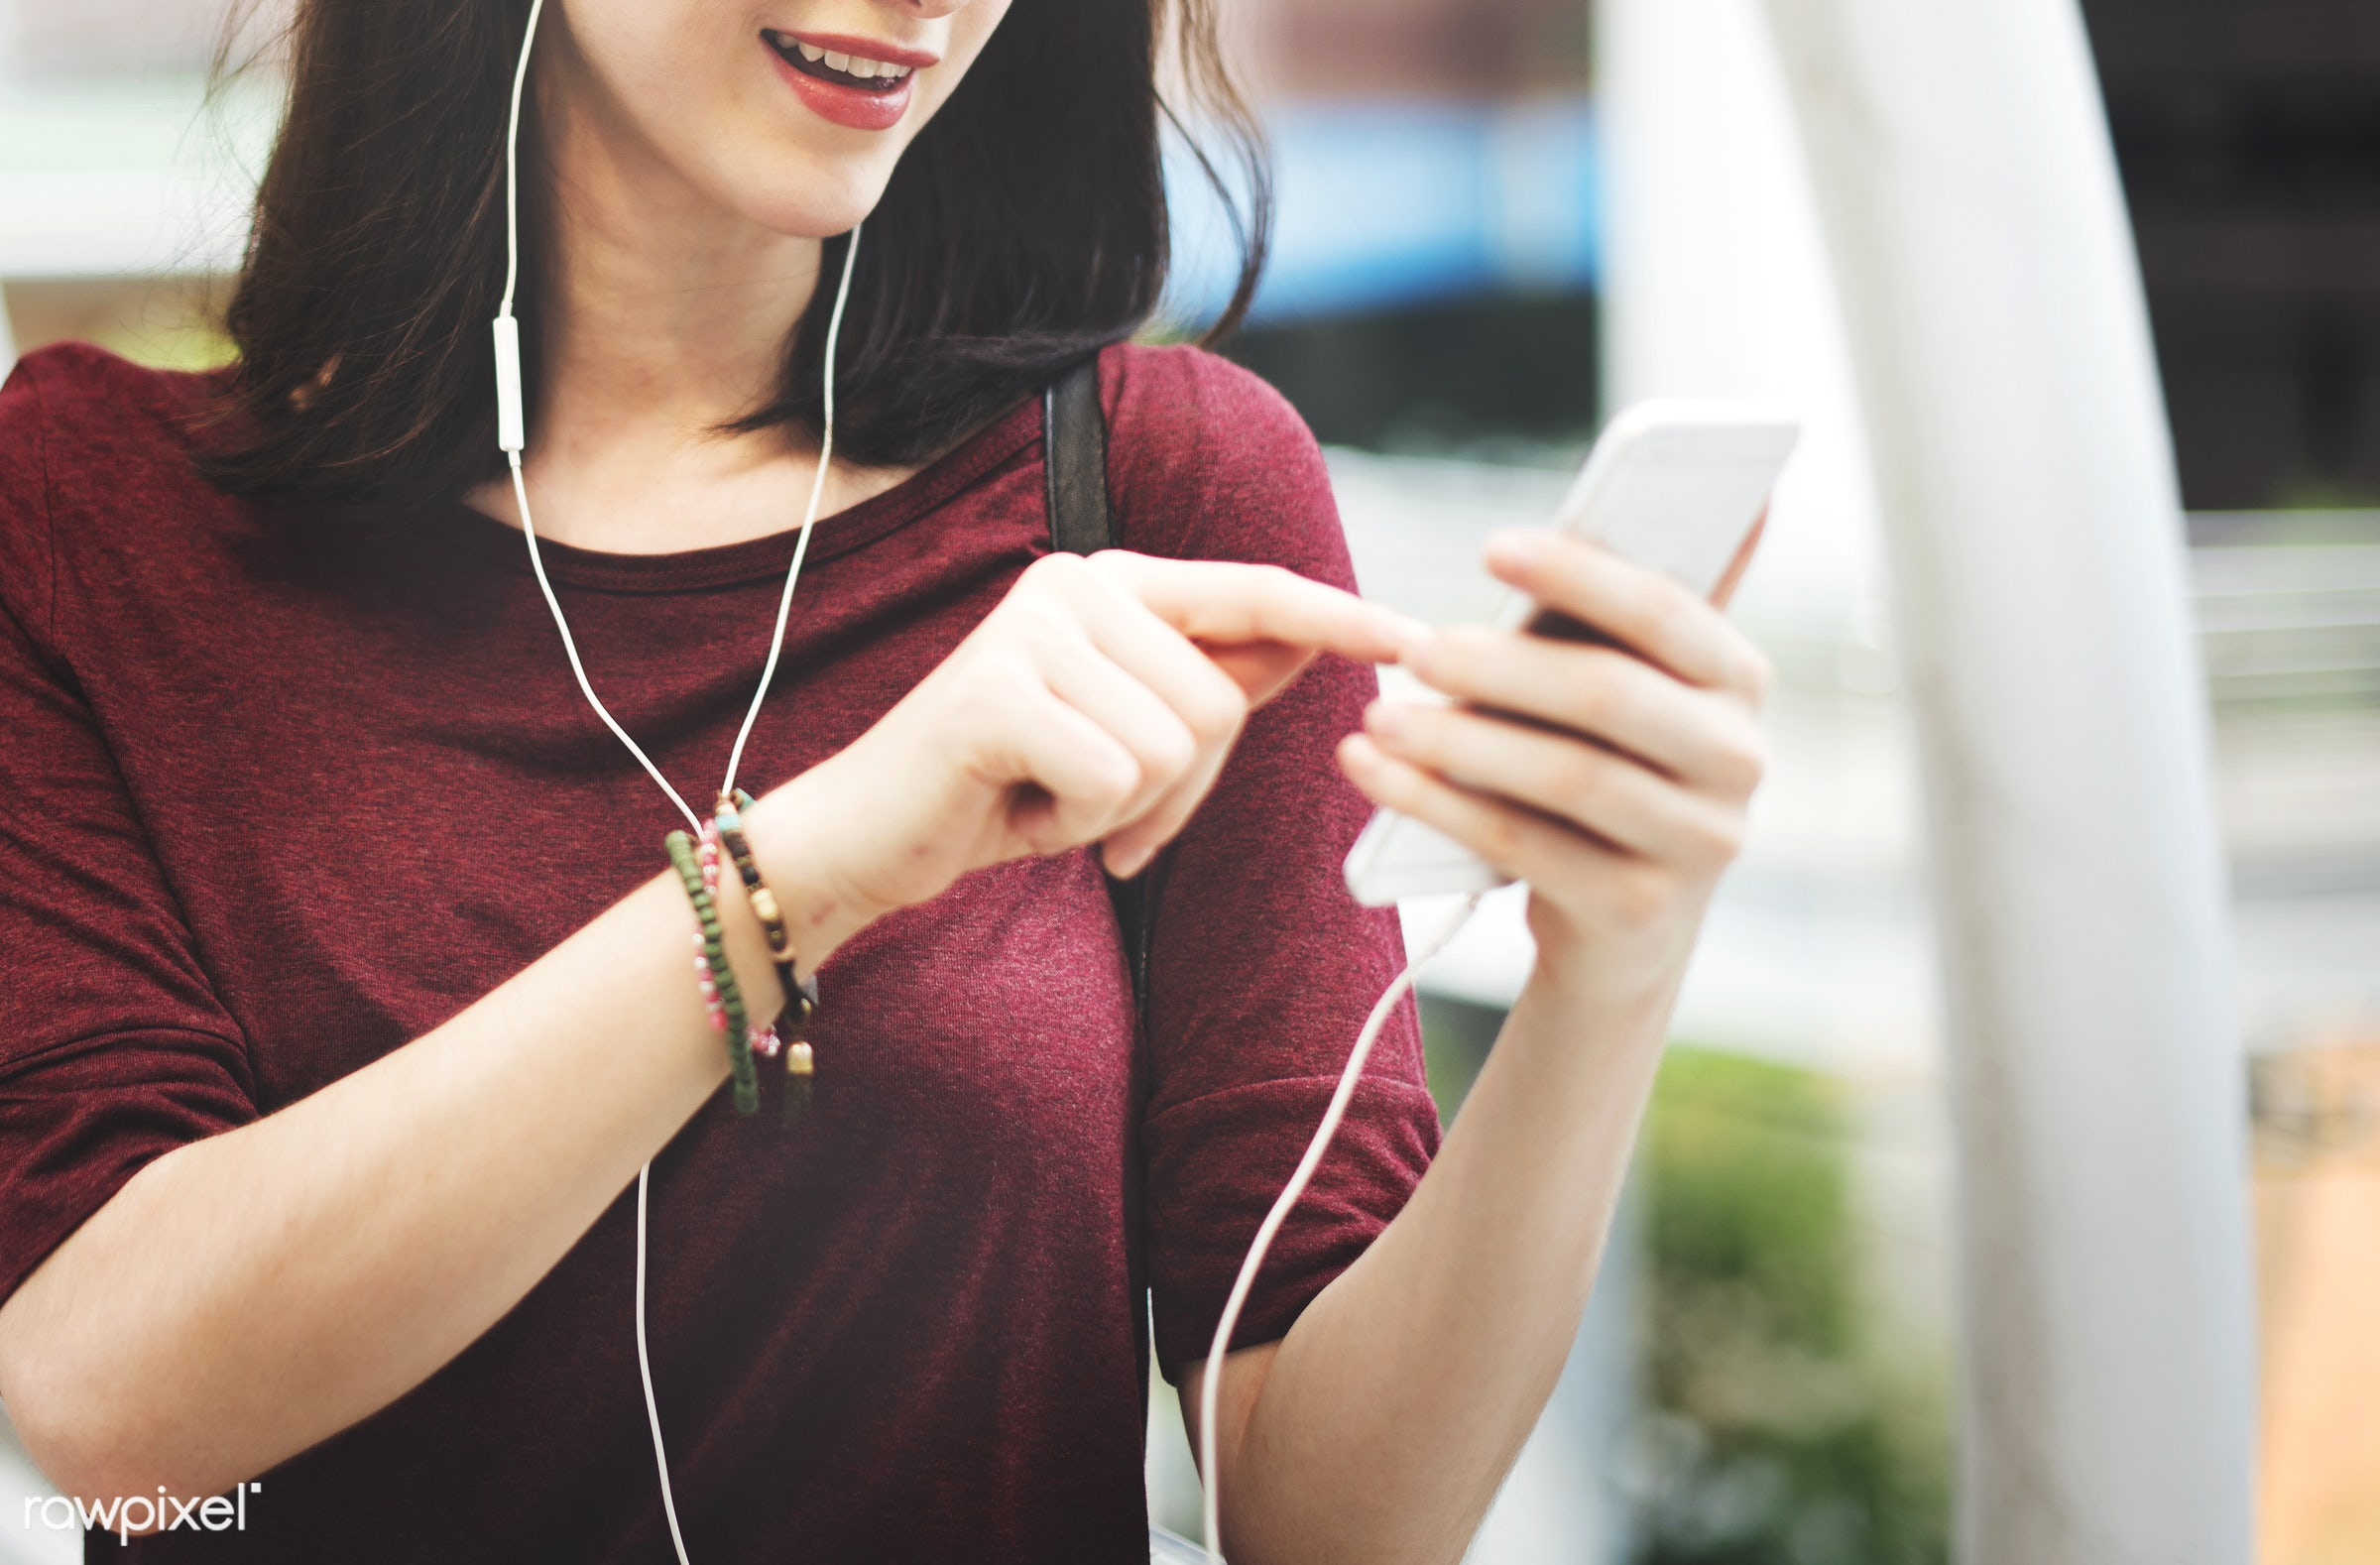 activity, audio equipment, casual, cheerful, chilling, city, cityscape, connection, crowd, earphones, enjoyment,...